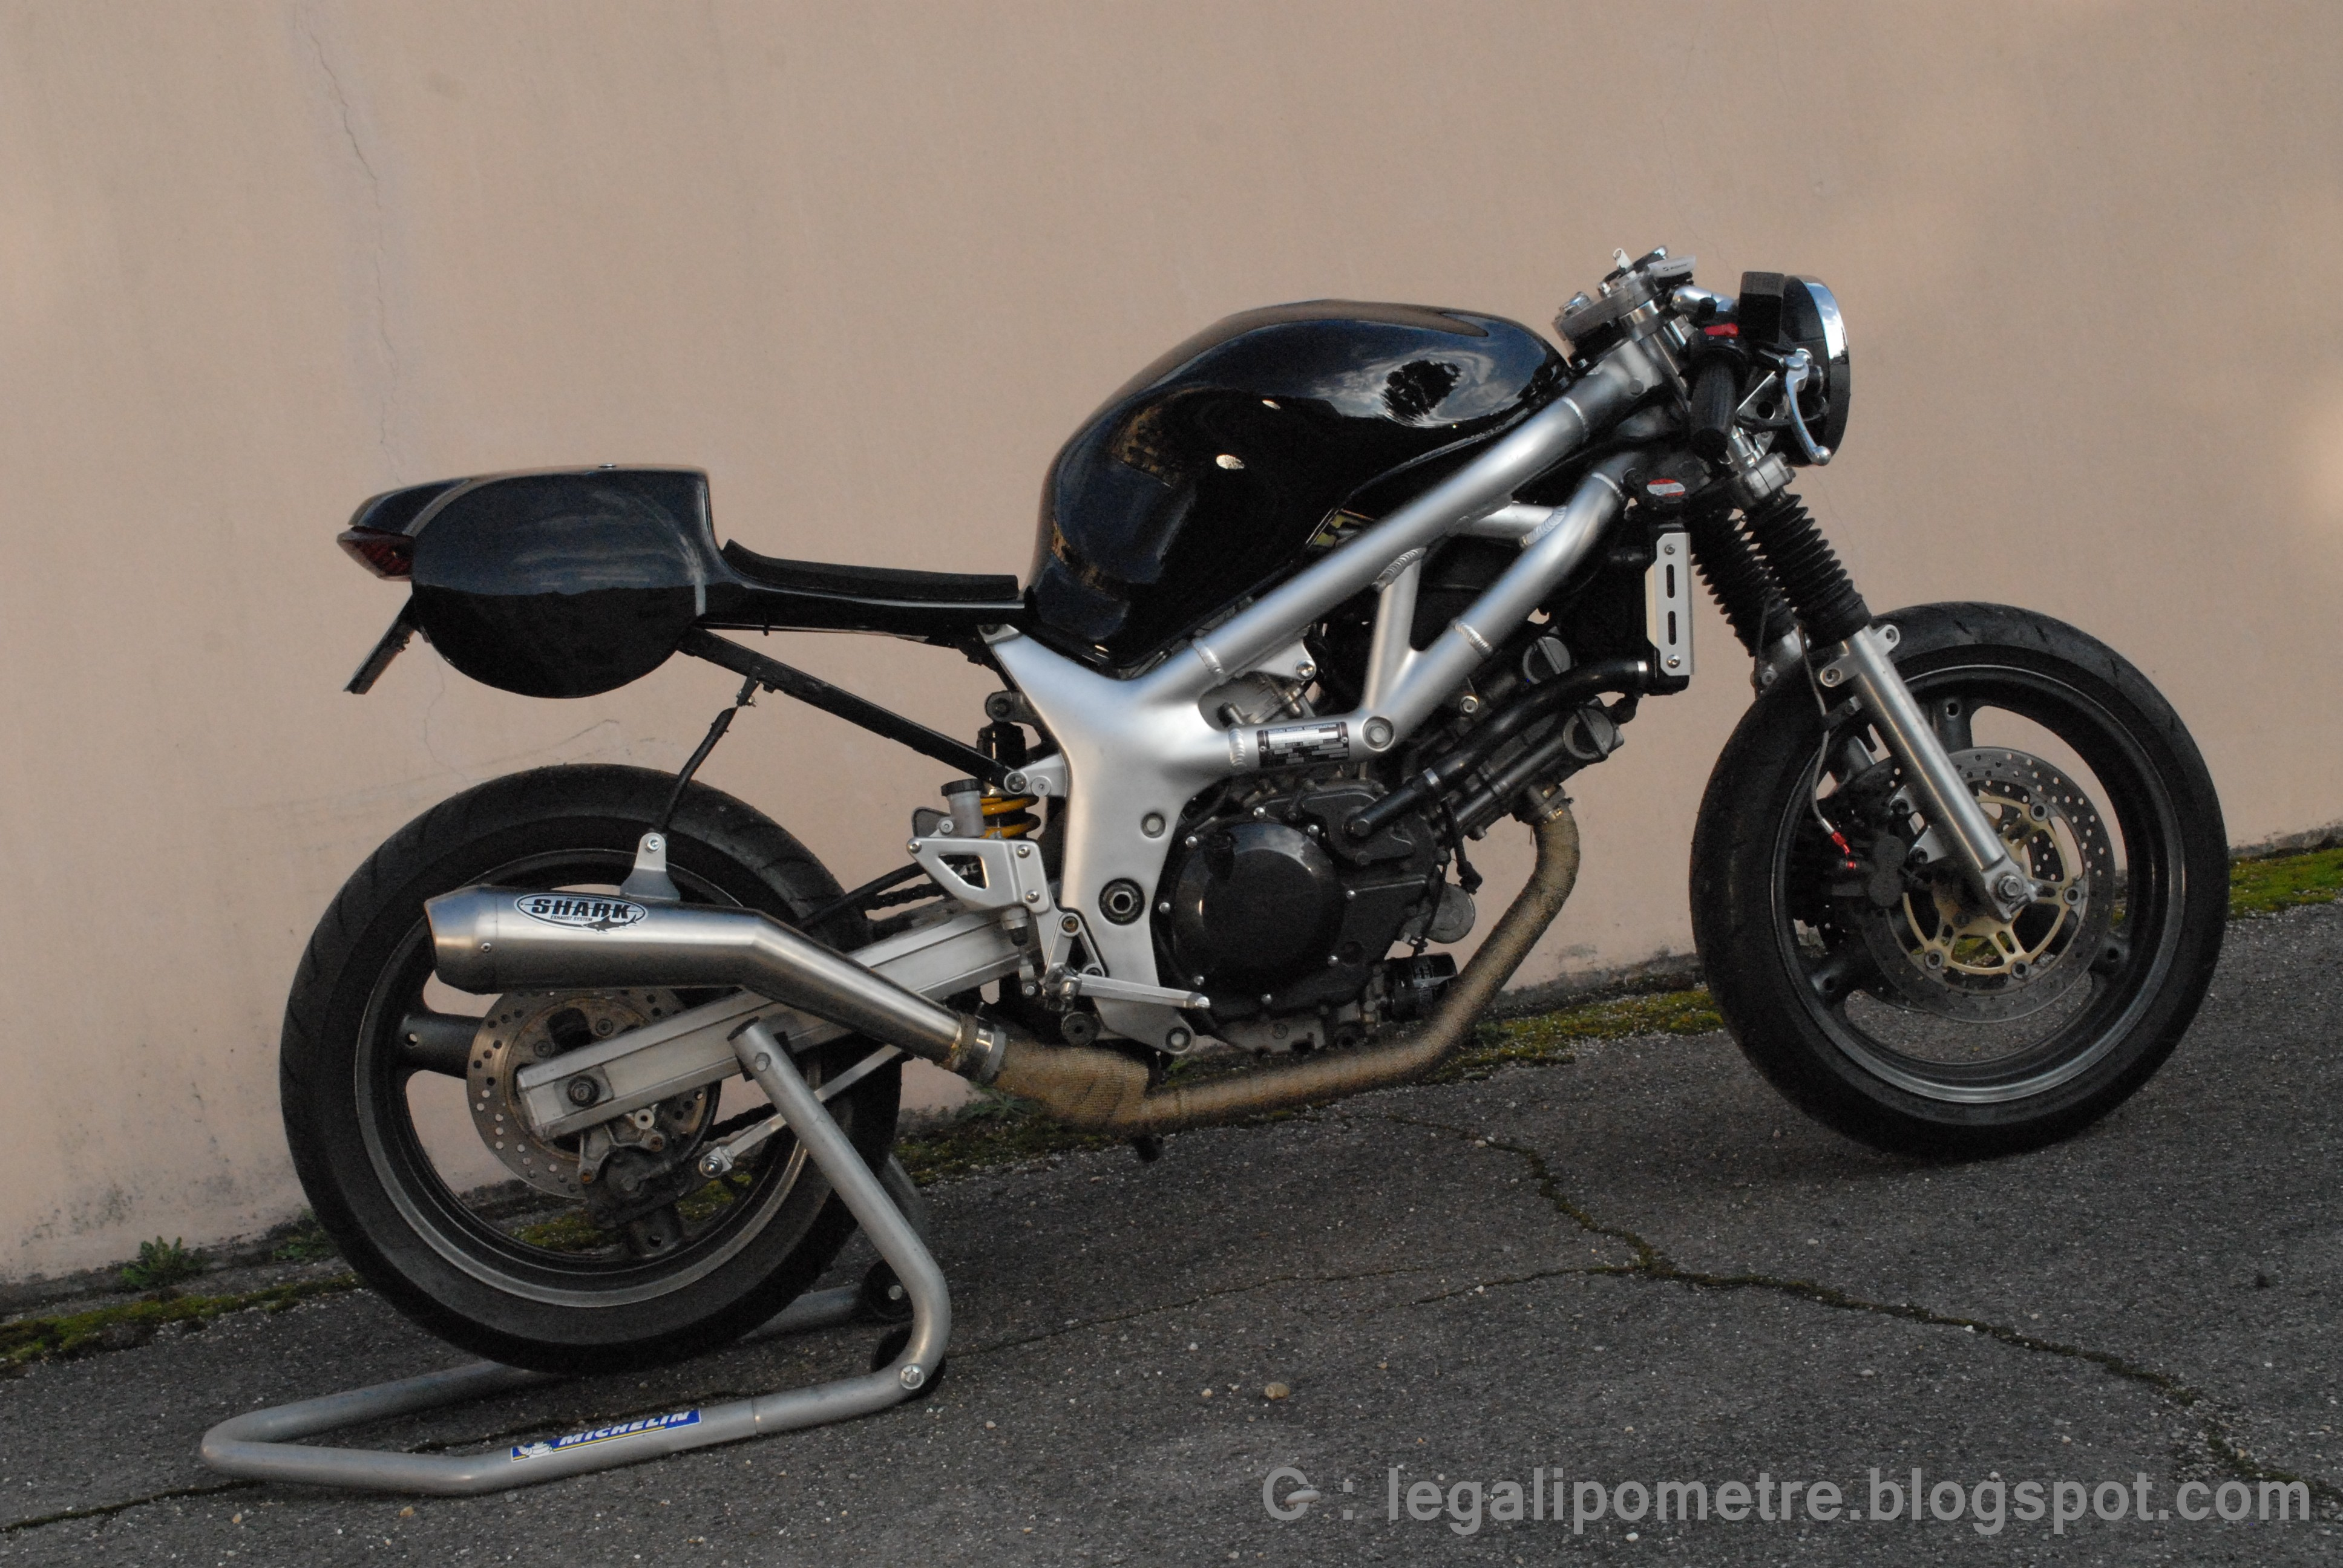 a kickass frist genertion sv650 cafe motorcycle photo of the day